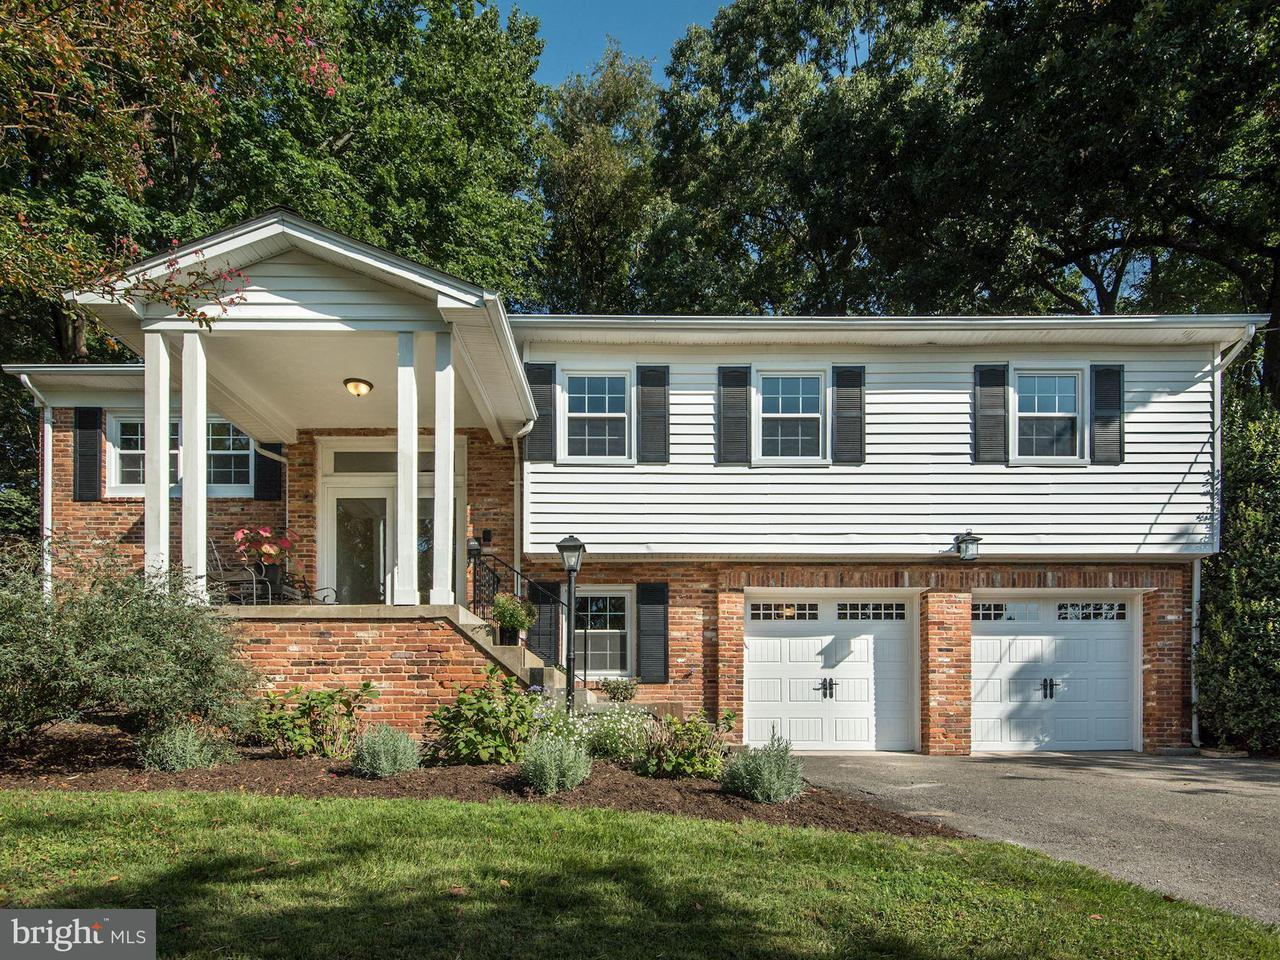 Single Family Home for Sale at 3645 38TH ST N 3645 38TH ST N Arlington, Virginia 22207 United States